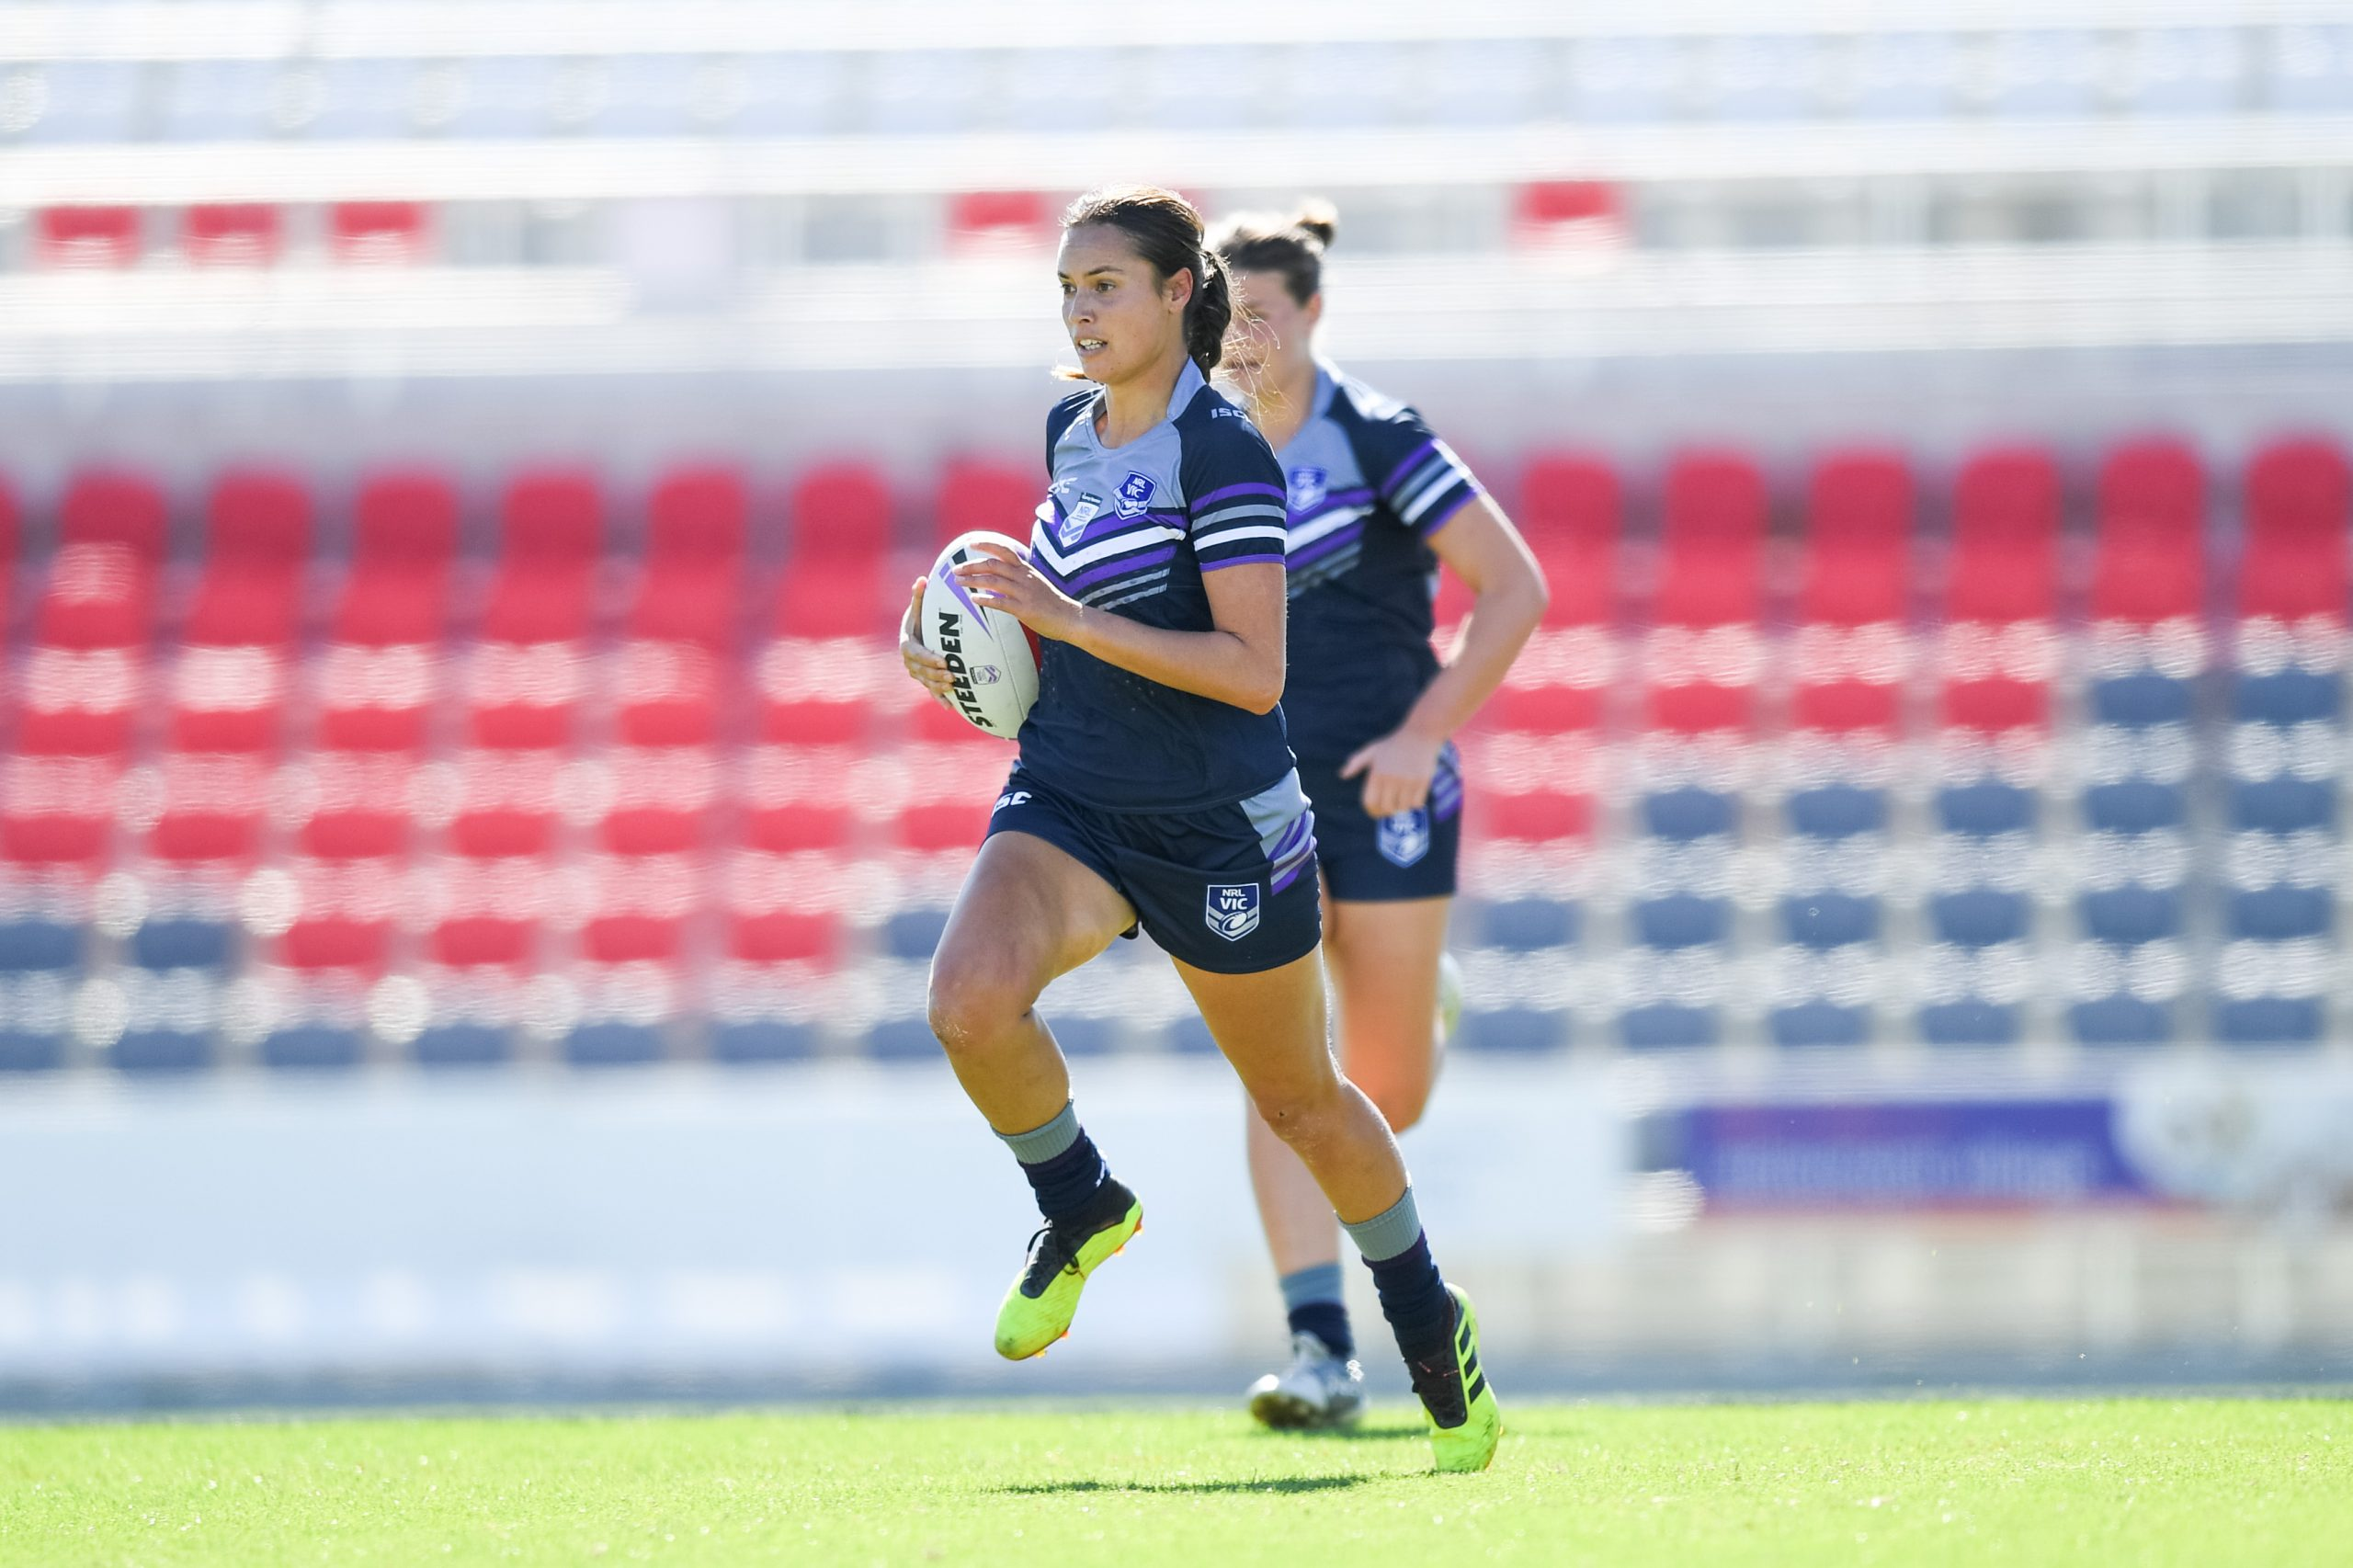 Walker makes NRLW case as Victoria shines on day two of National Championships